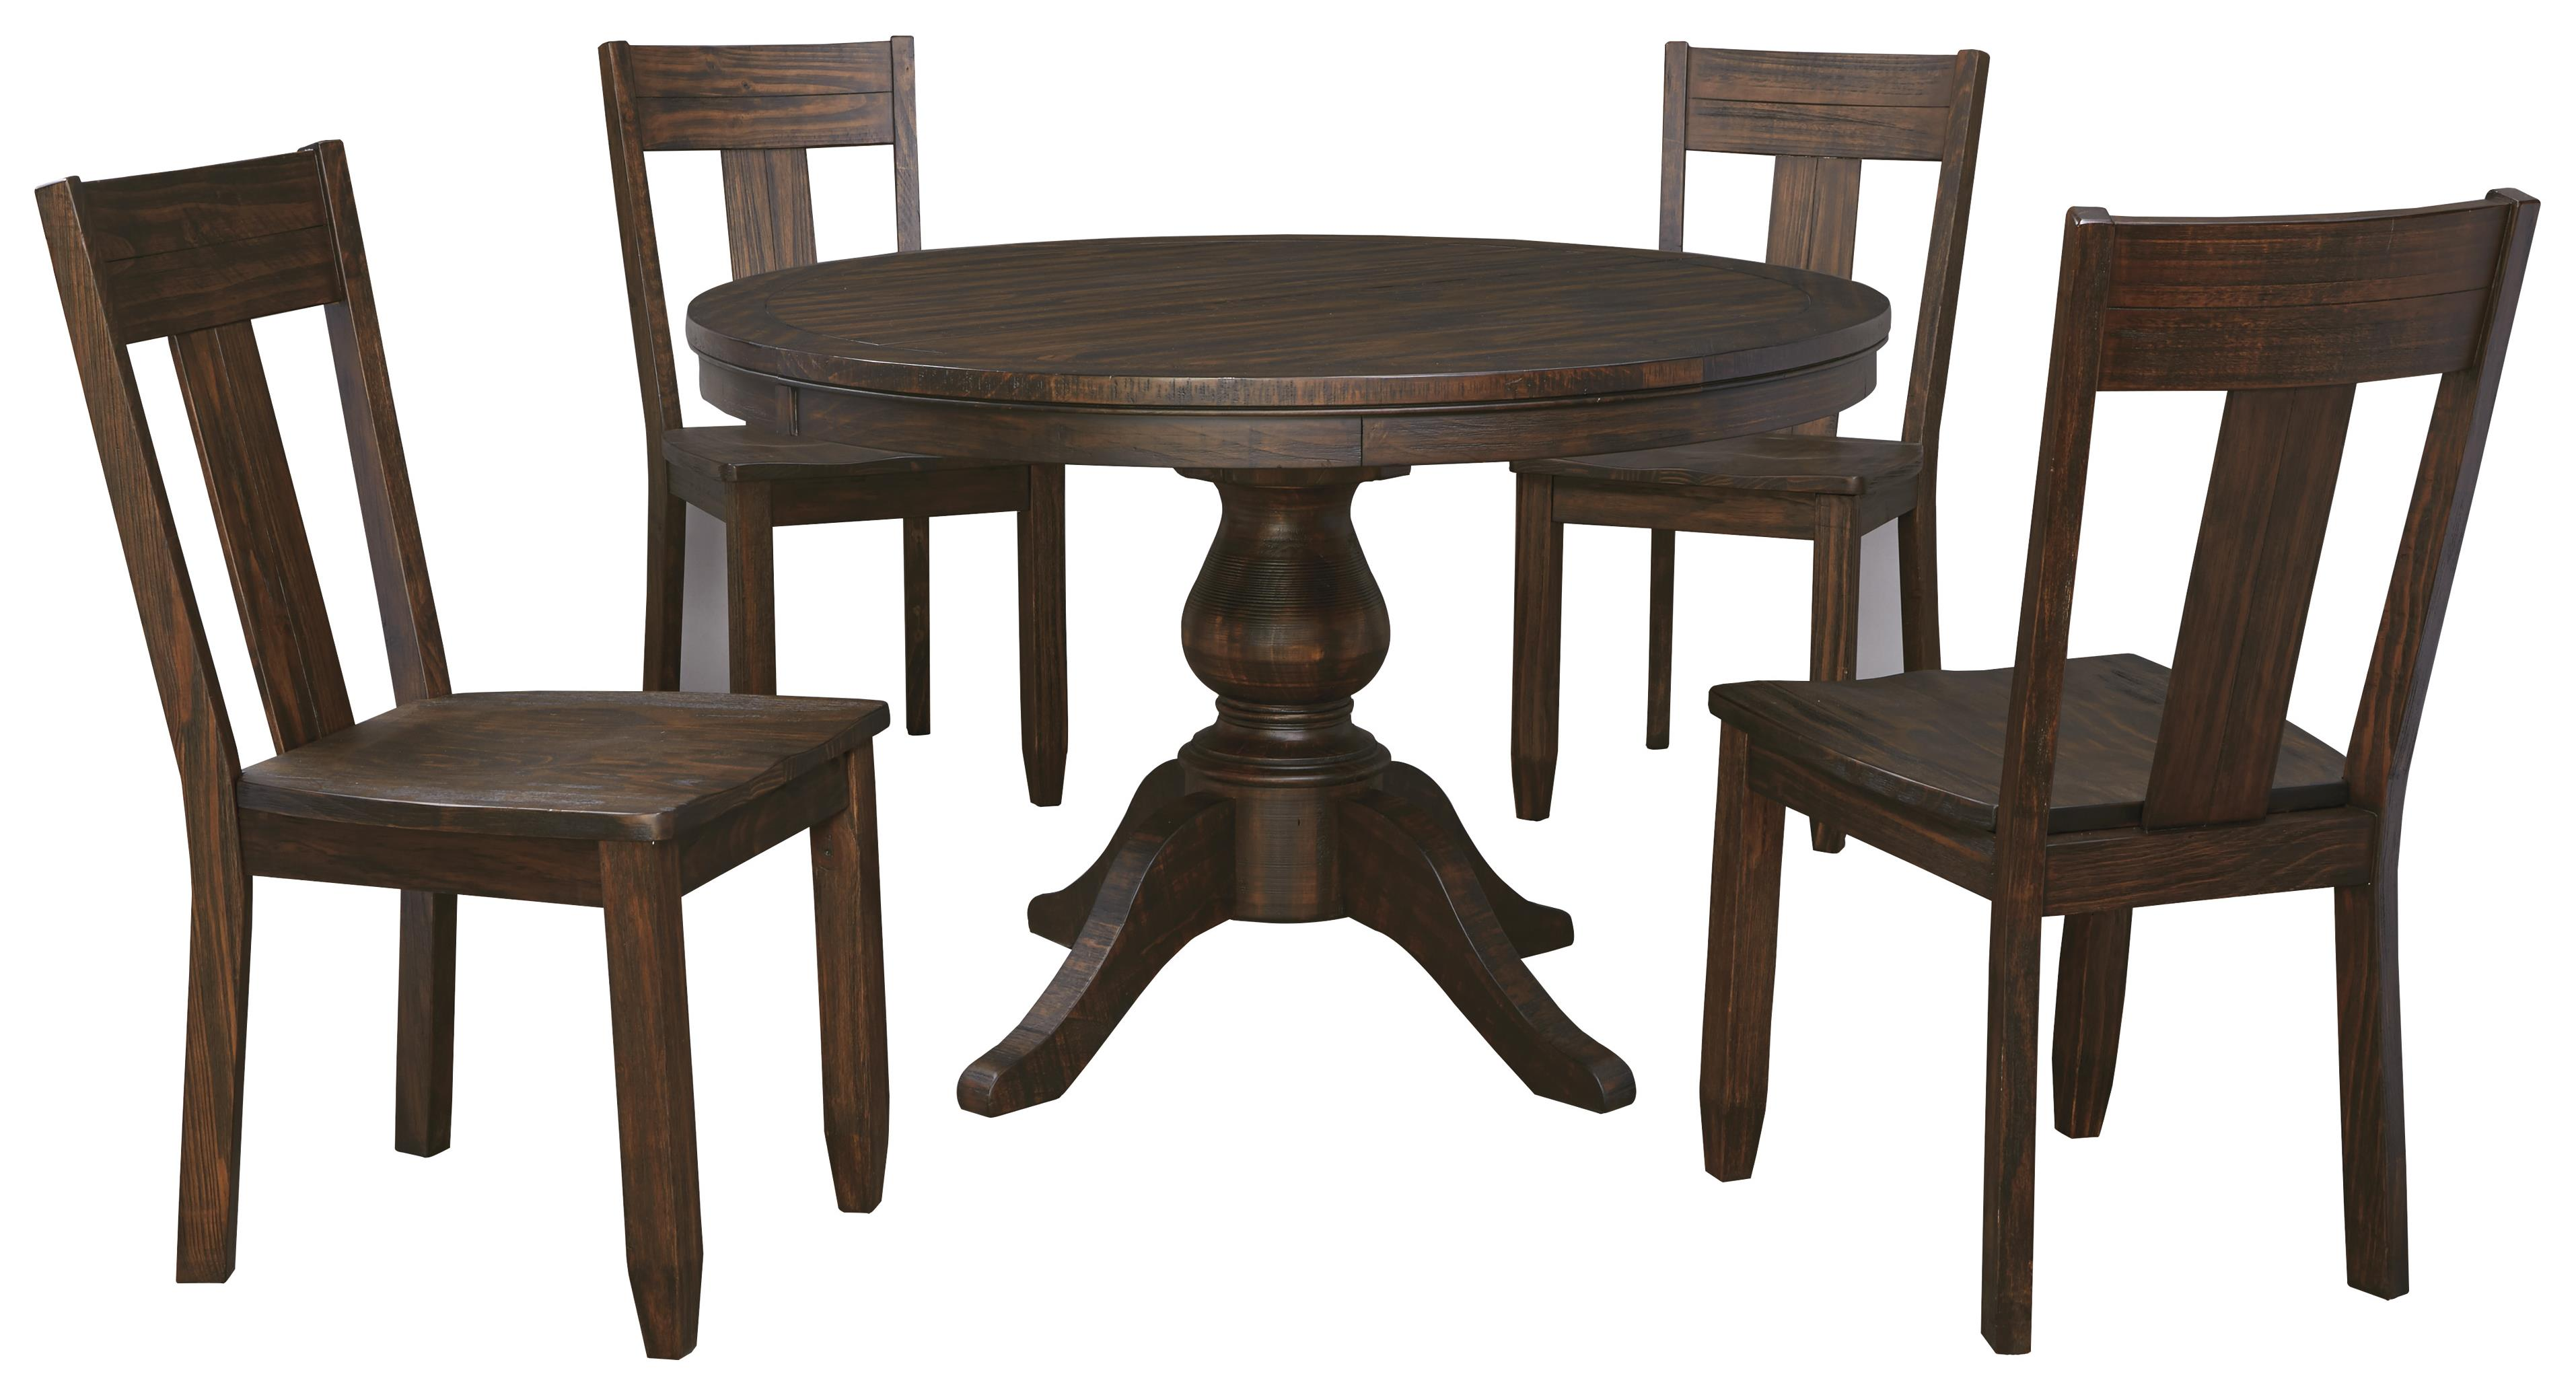 5 Piece Round Dining Table Set with Wood Seat Side Chairs  : products2Fsignaturedesignbyashley2Fcolor2Ftrudell20d658d658 50b2Bt2B4x01 b1 from www.wolffurniture.com size 3828 x 2067 jpeg 409kB